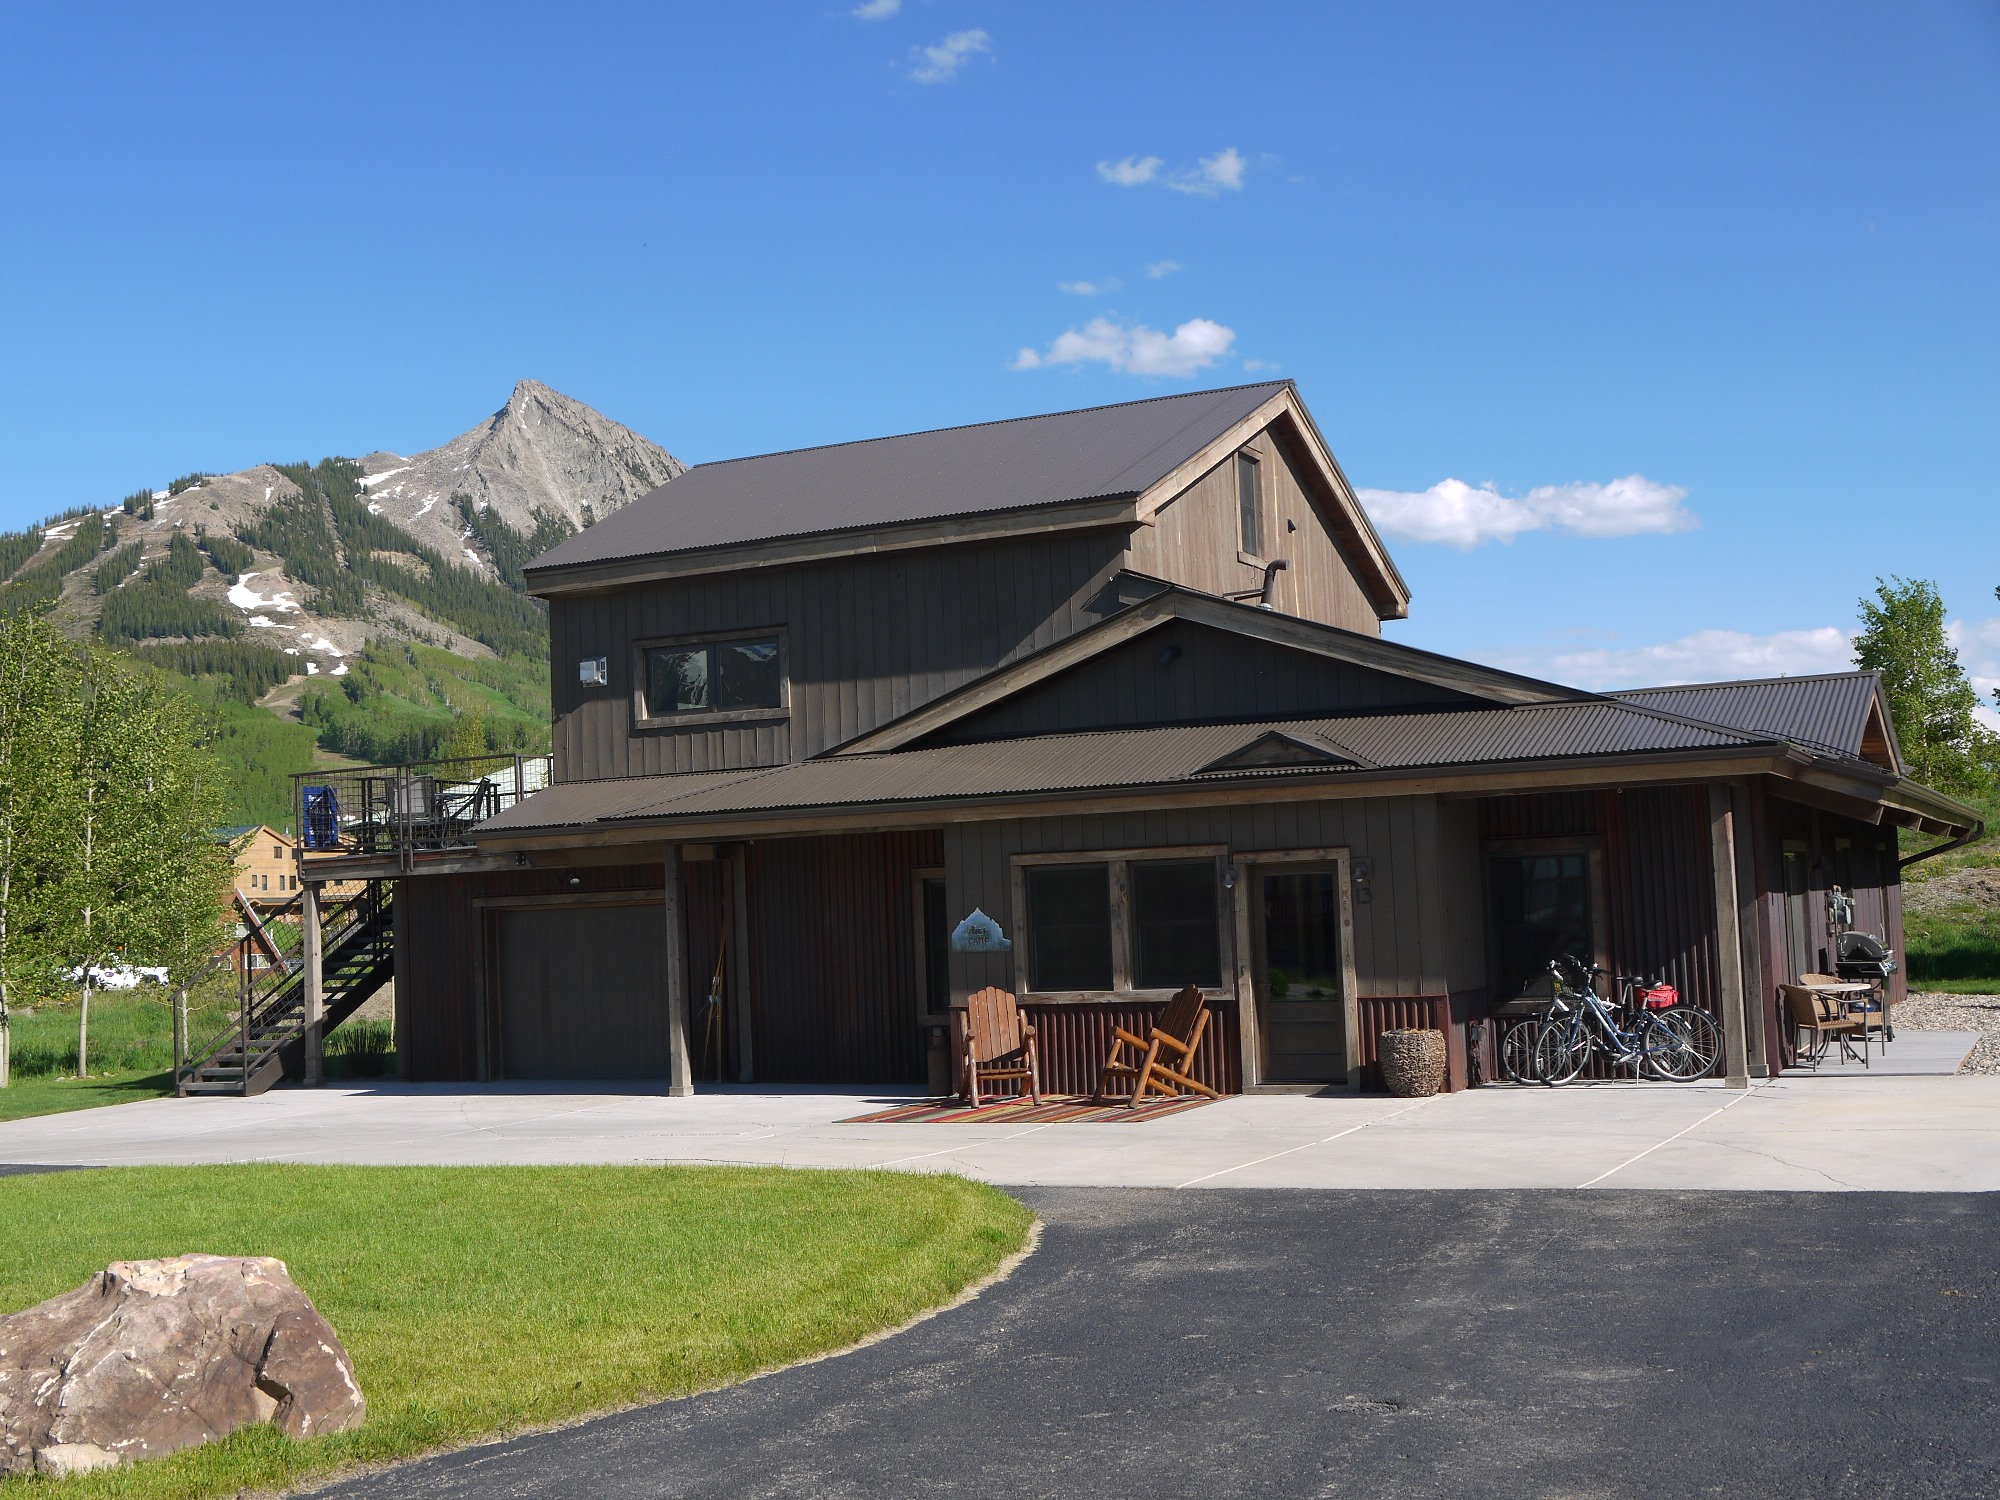 Single Family Home for Sale at Refined Mountain Retreat 13 Paradise Road Mount Crested Butte, Colorado 81225 United States